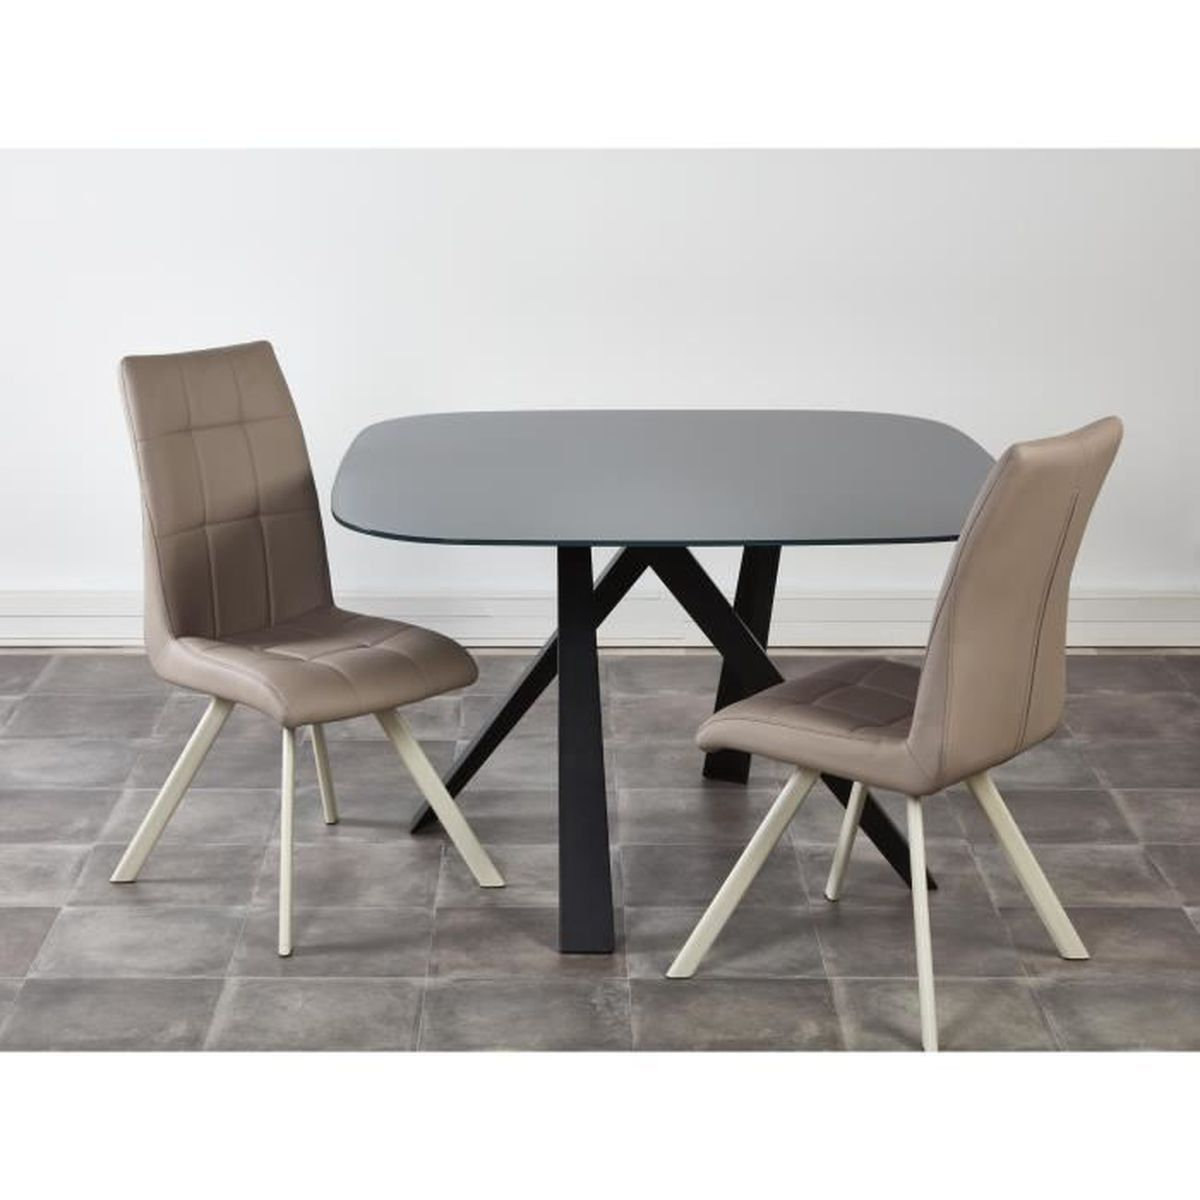 Ensemble table manger 2 chaises voldoy taupe achat vente table a mang - Table a manger taupe ...